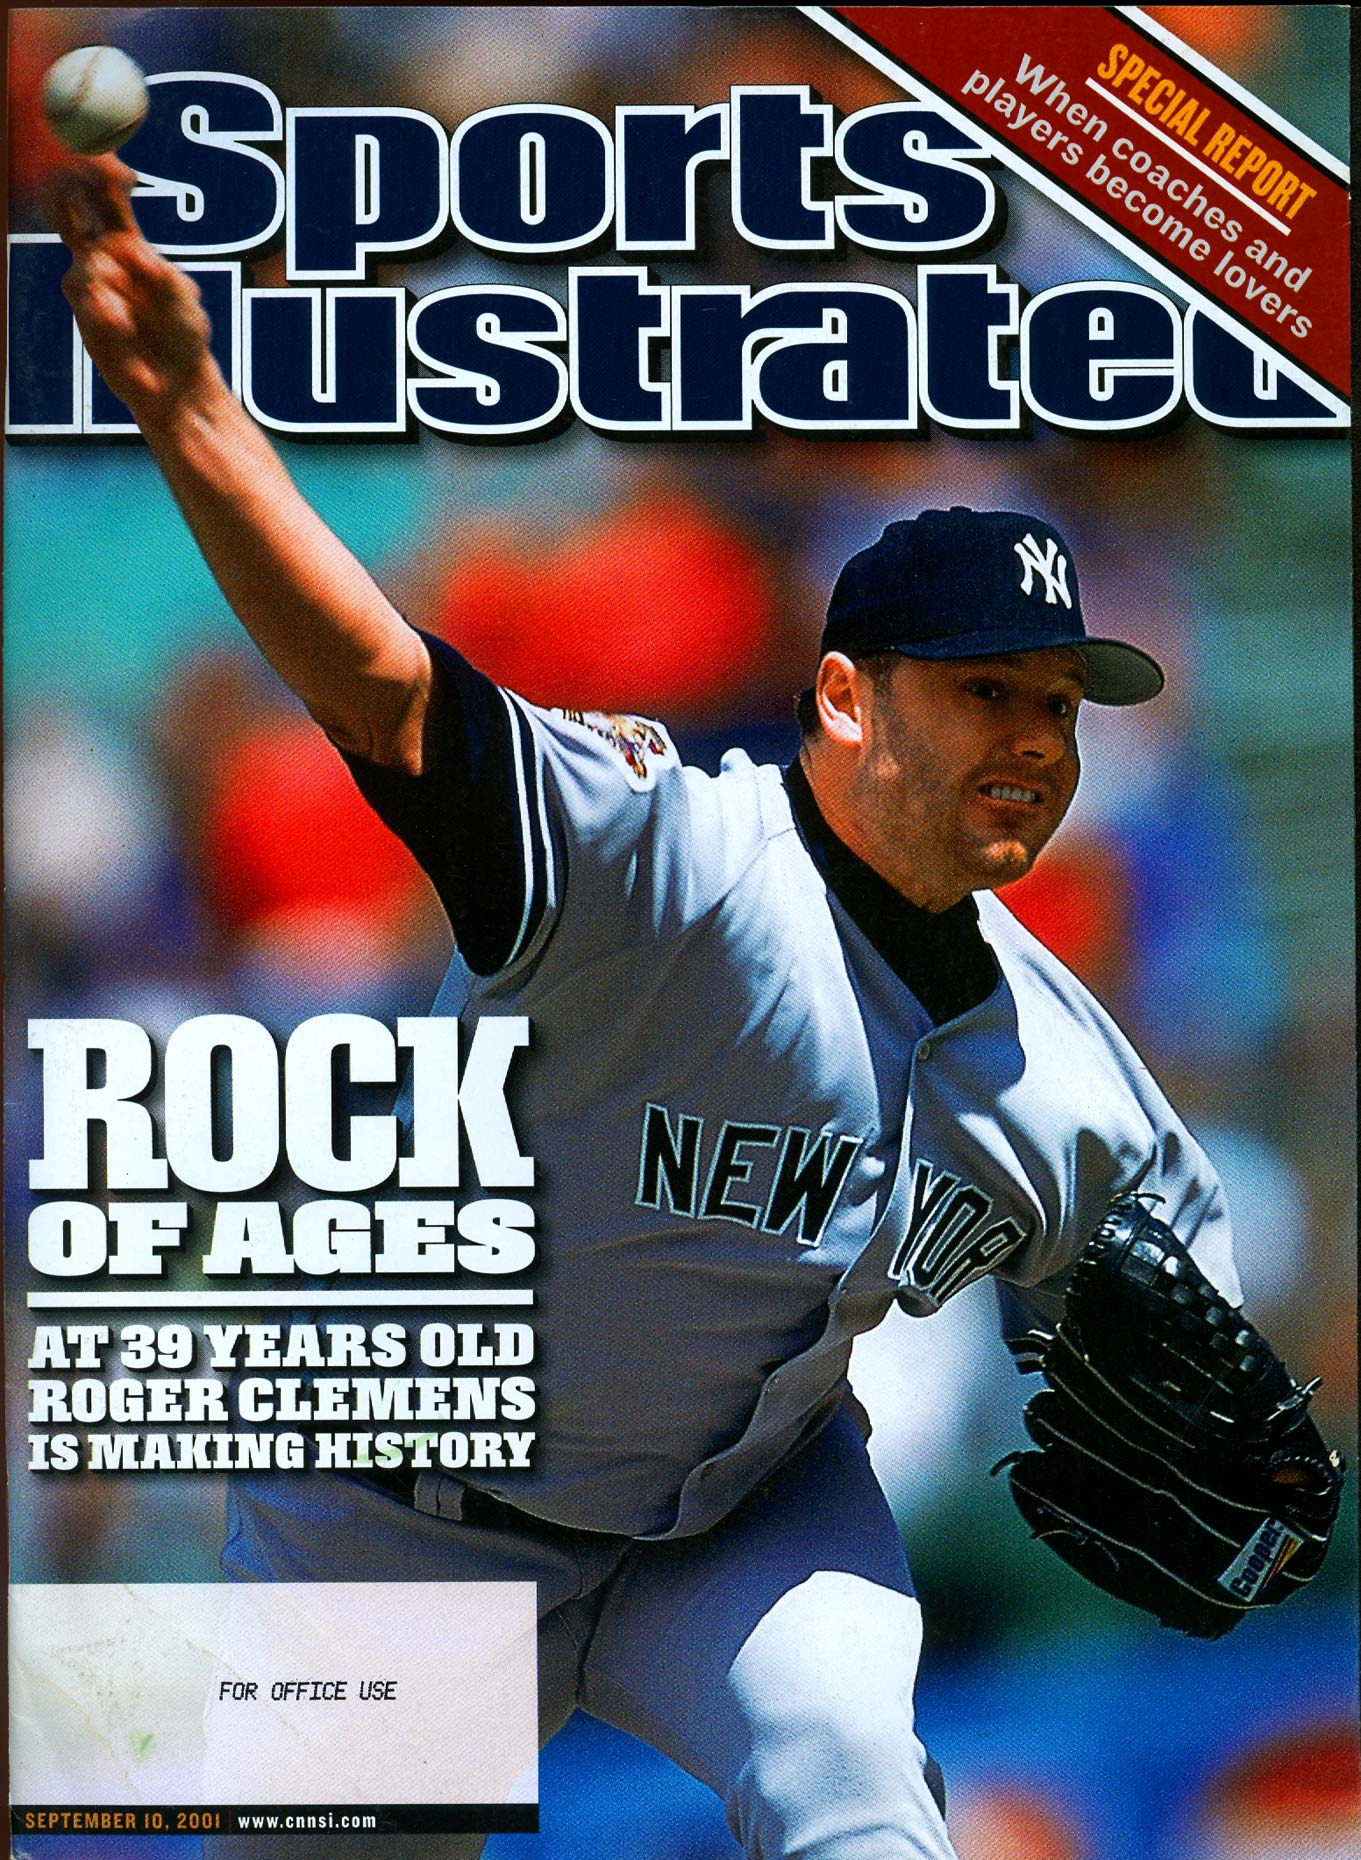 New York Yankees pitcher Roger Clemens on the cover of Sports Illustrated.